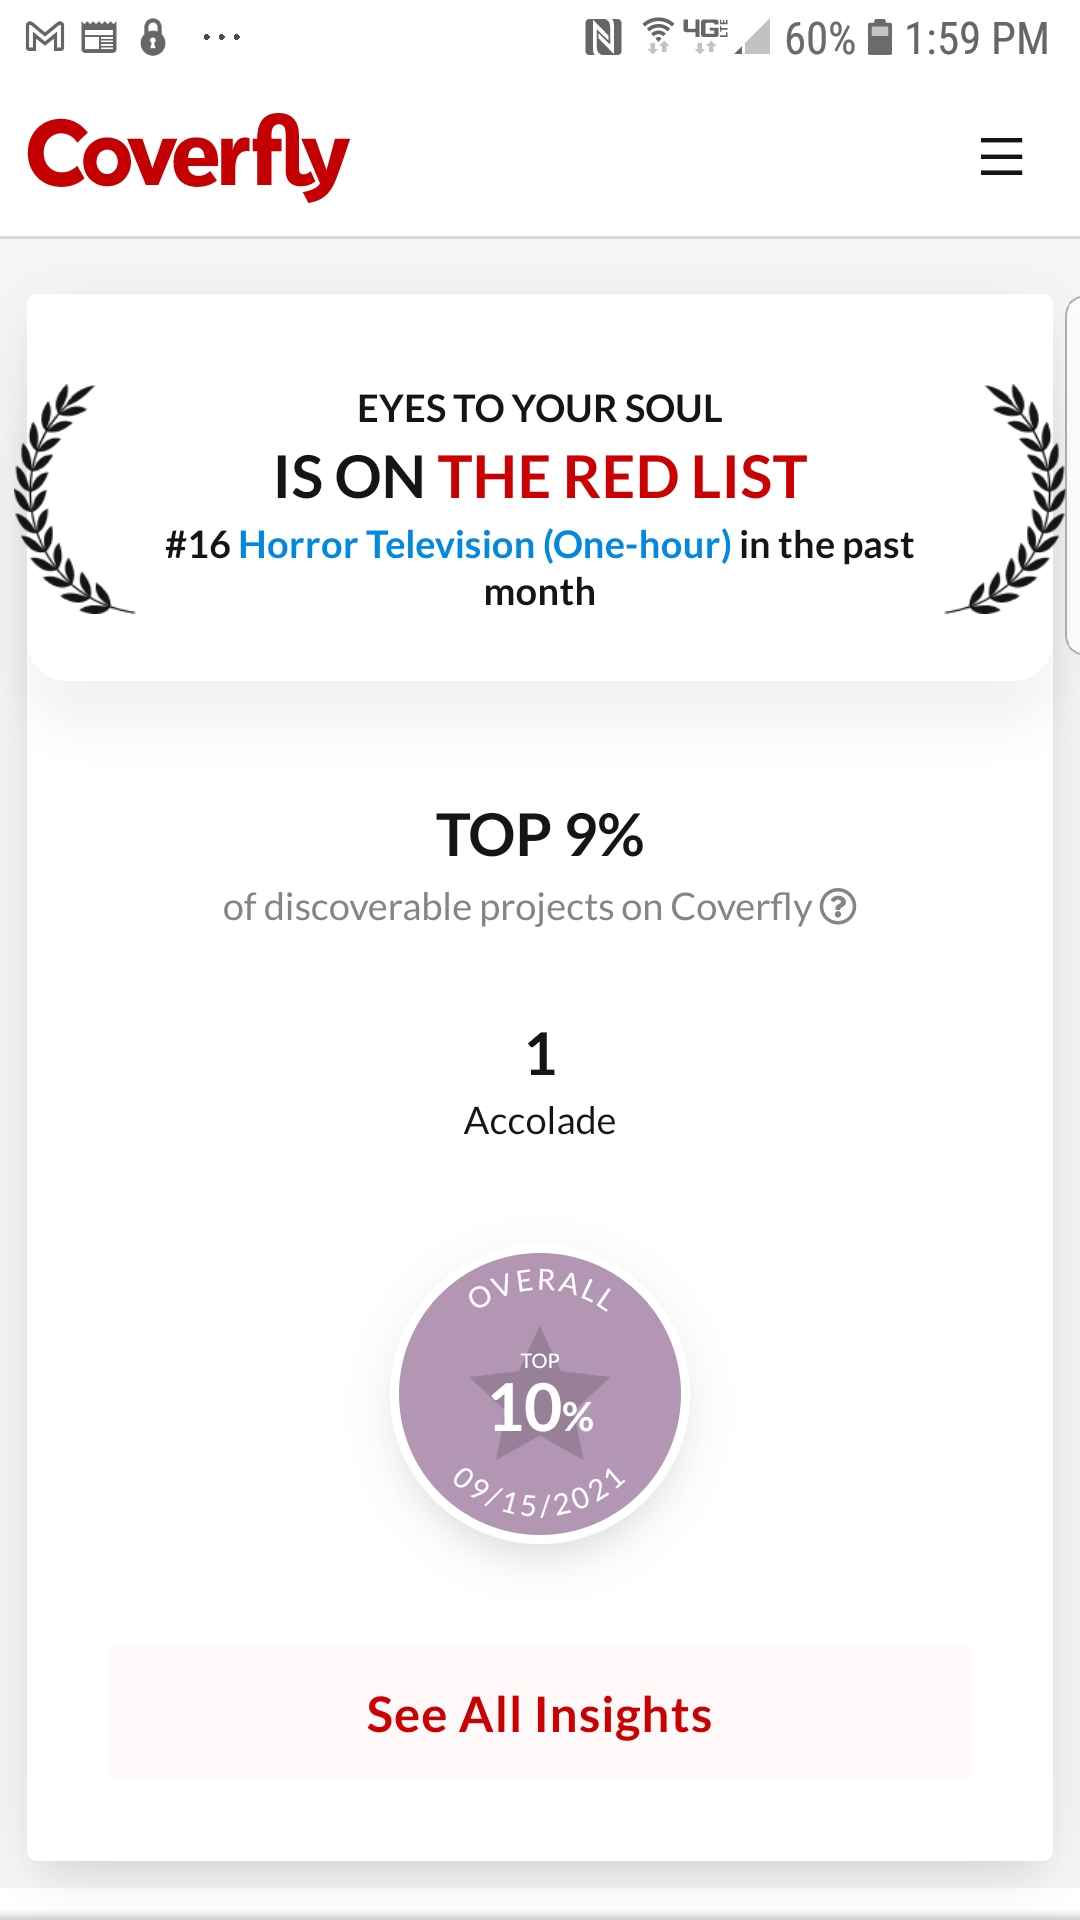 My Horror Pilot Teleplay Made the Red List for Coverfly and Ranked at 16 for its Horror 1-Hour Television Category.